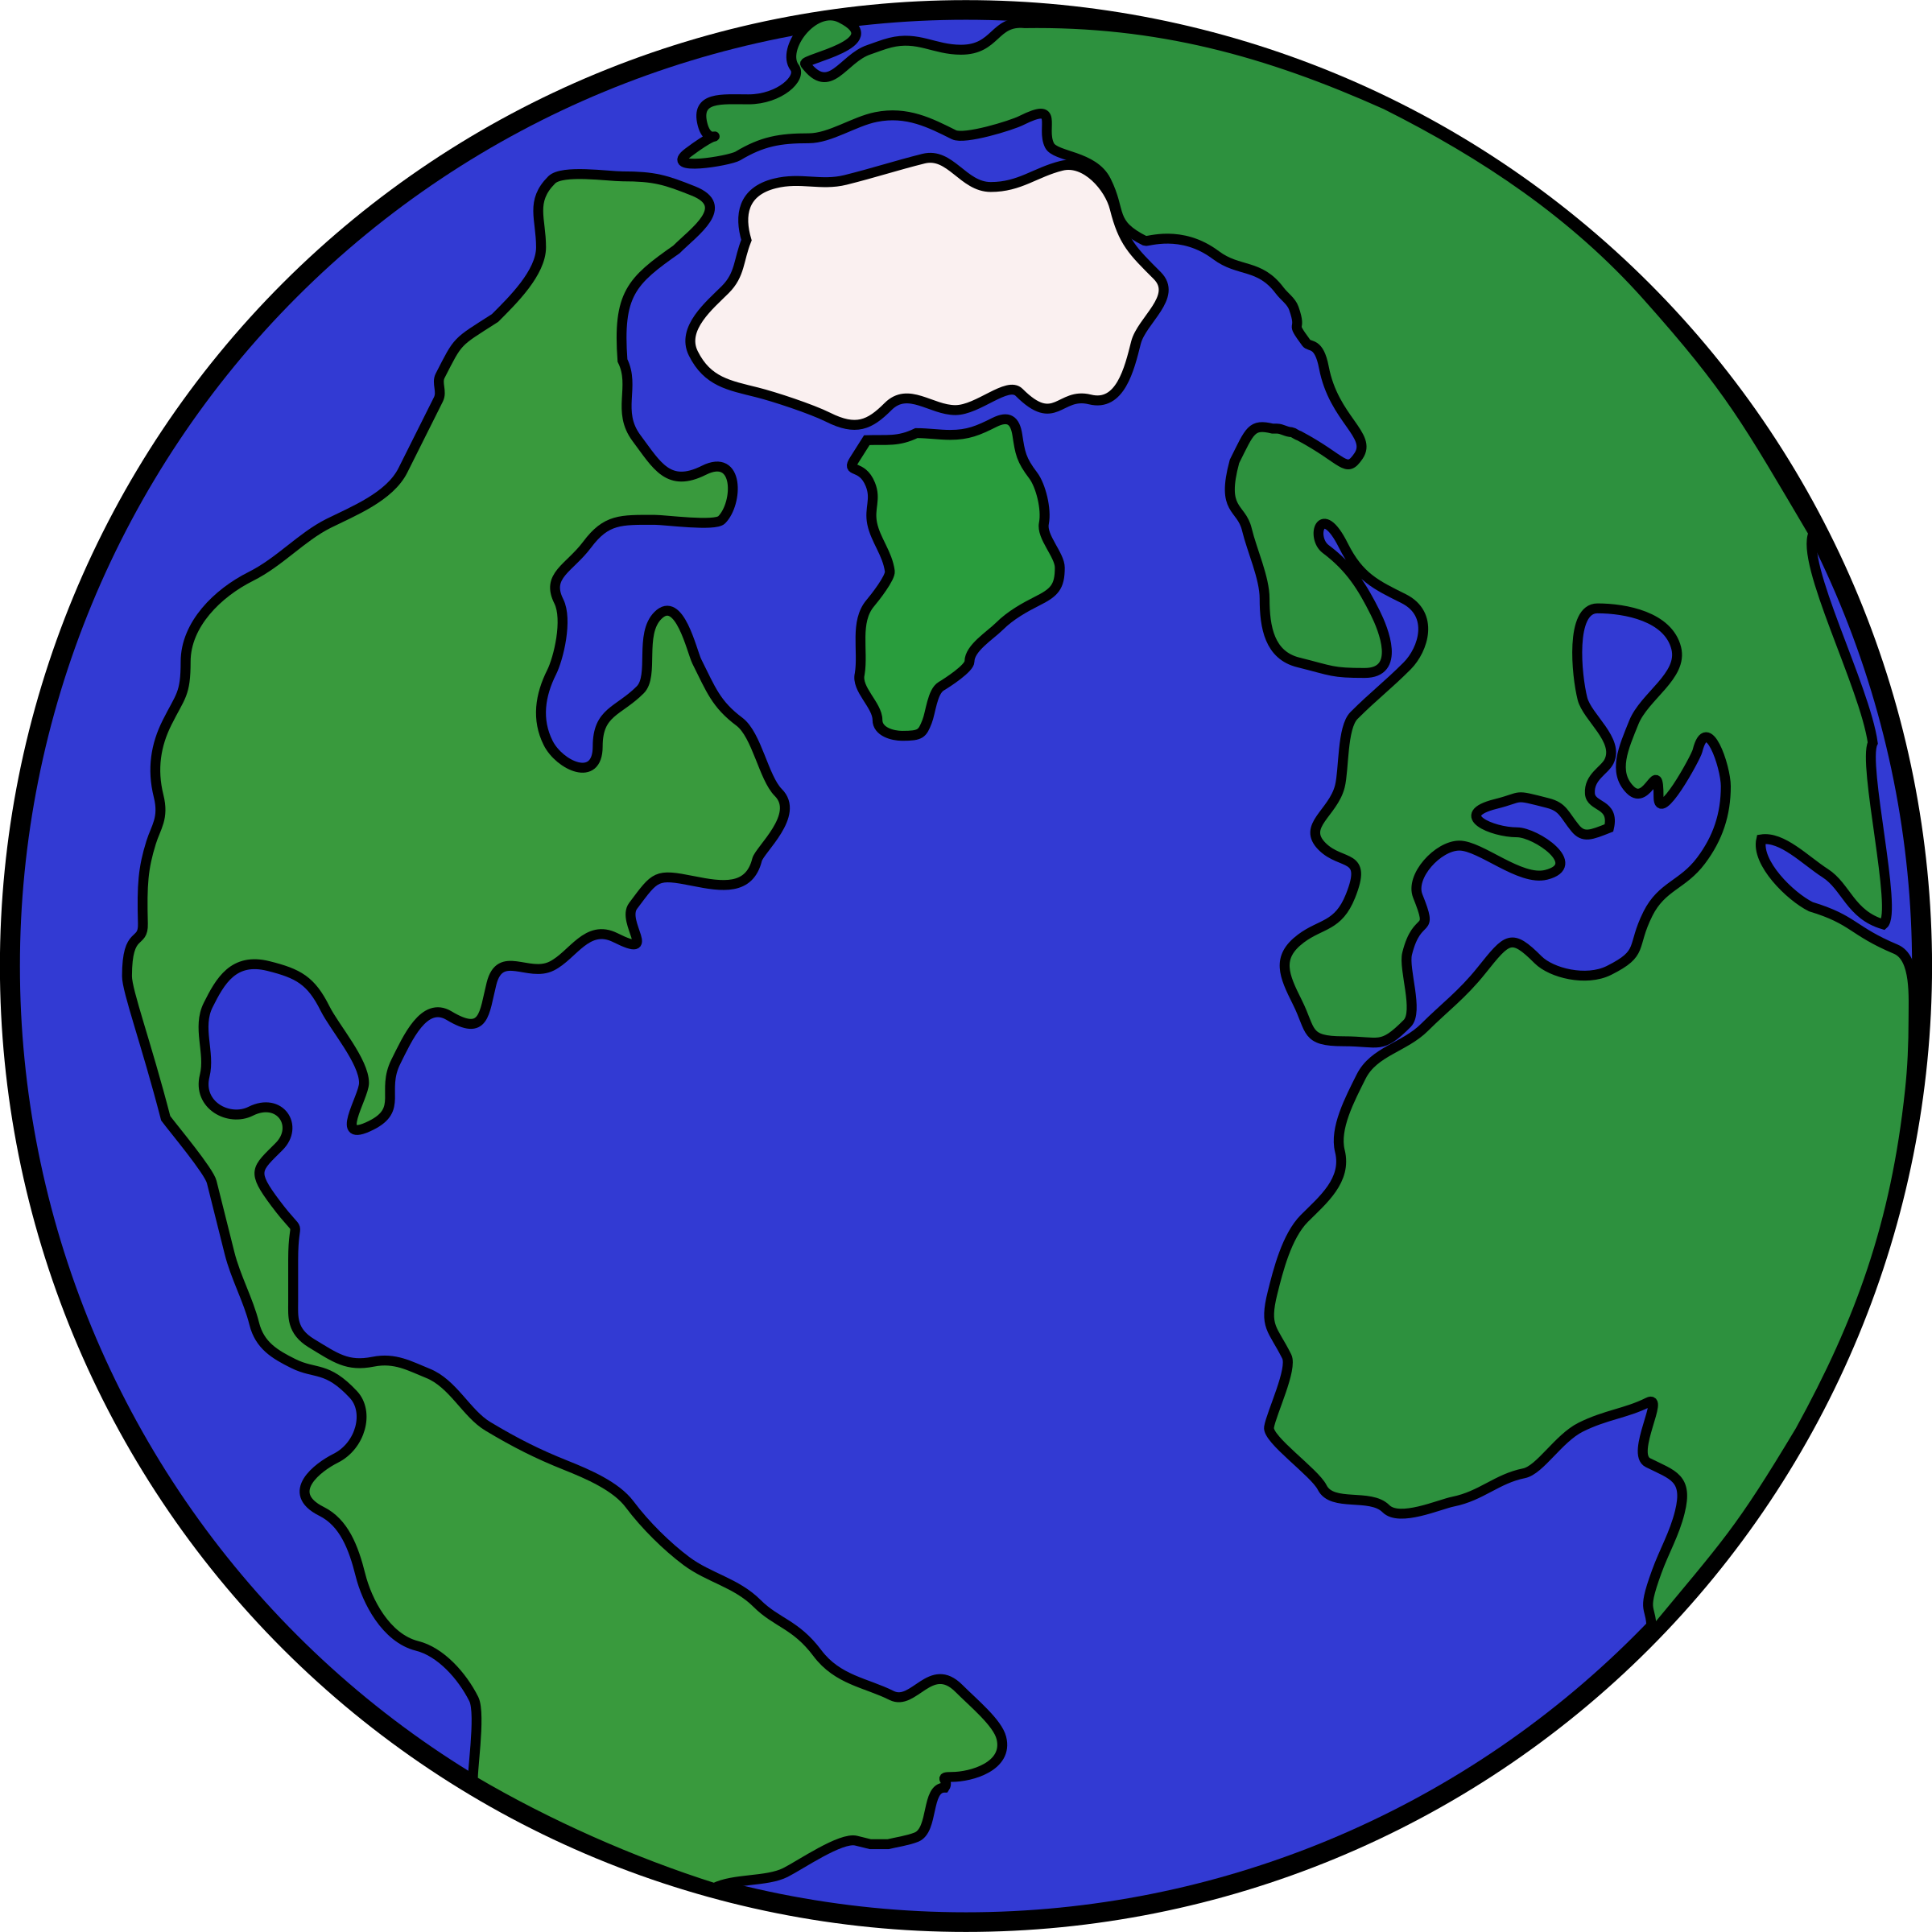 2400x2400 Globe Clipart Colored